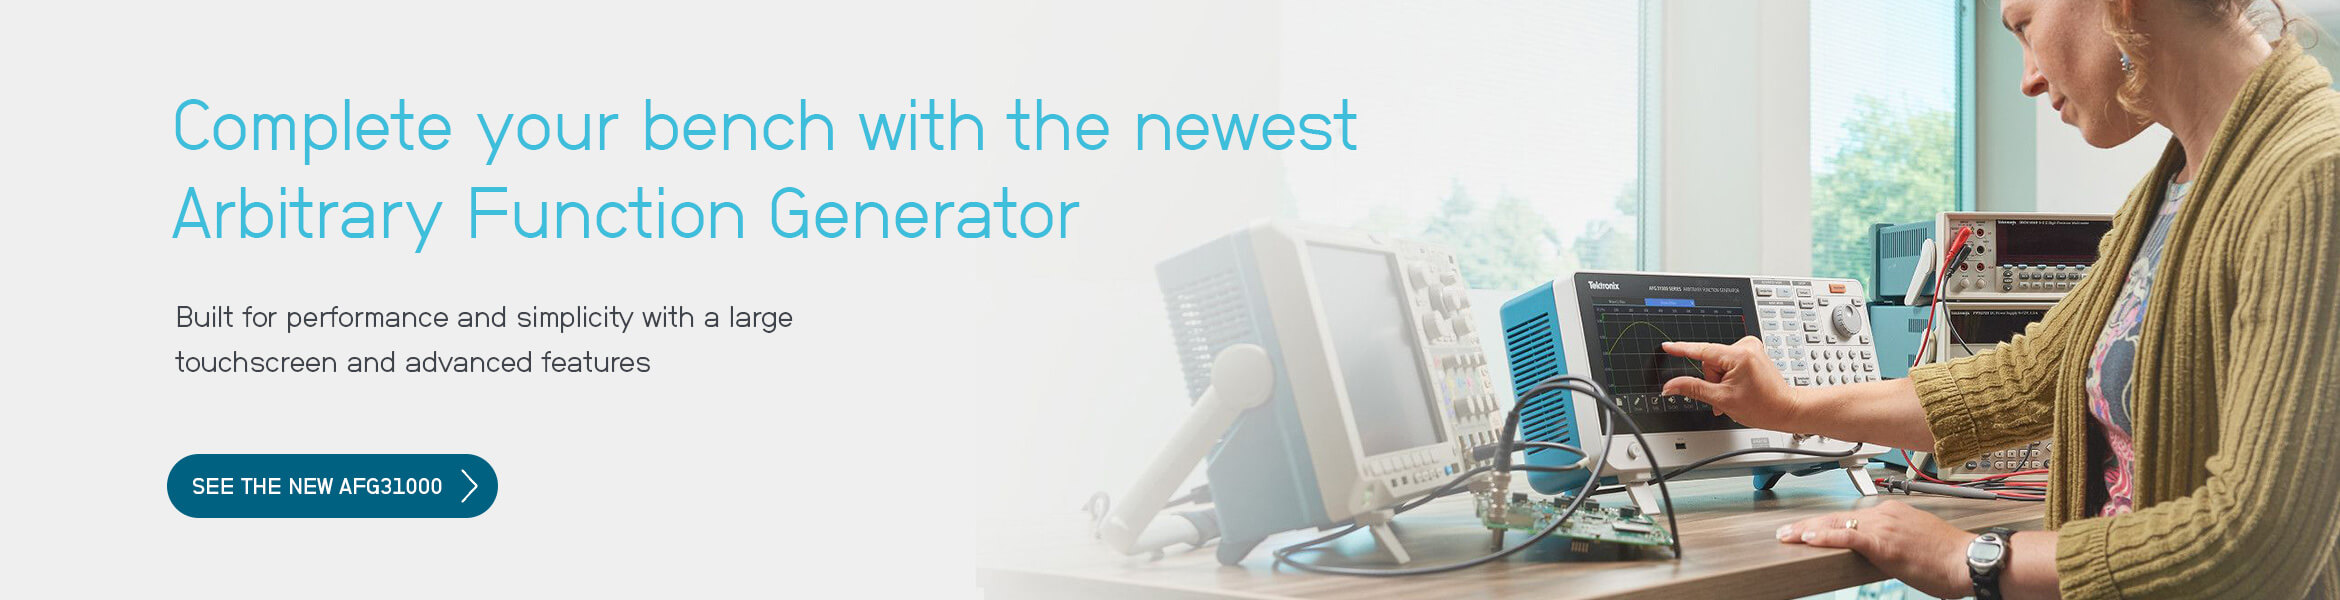 Complete your bench with the newest arbitrary function generator (AFG)